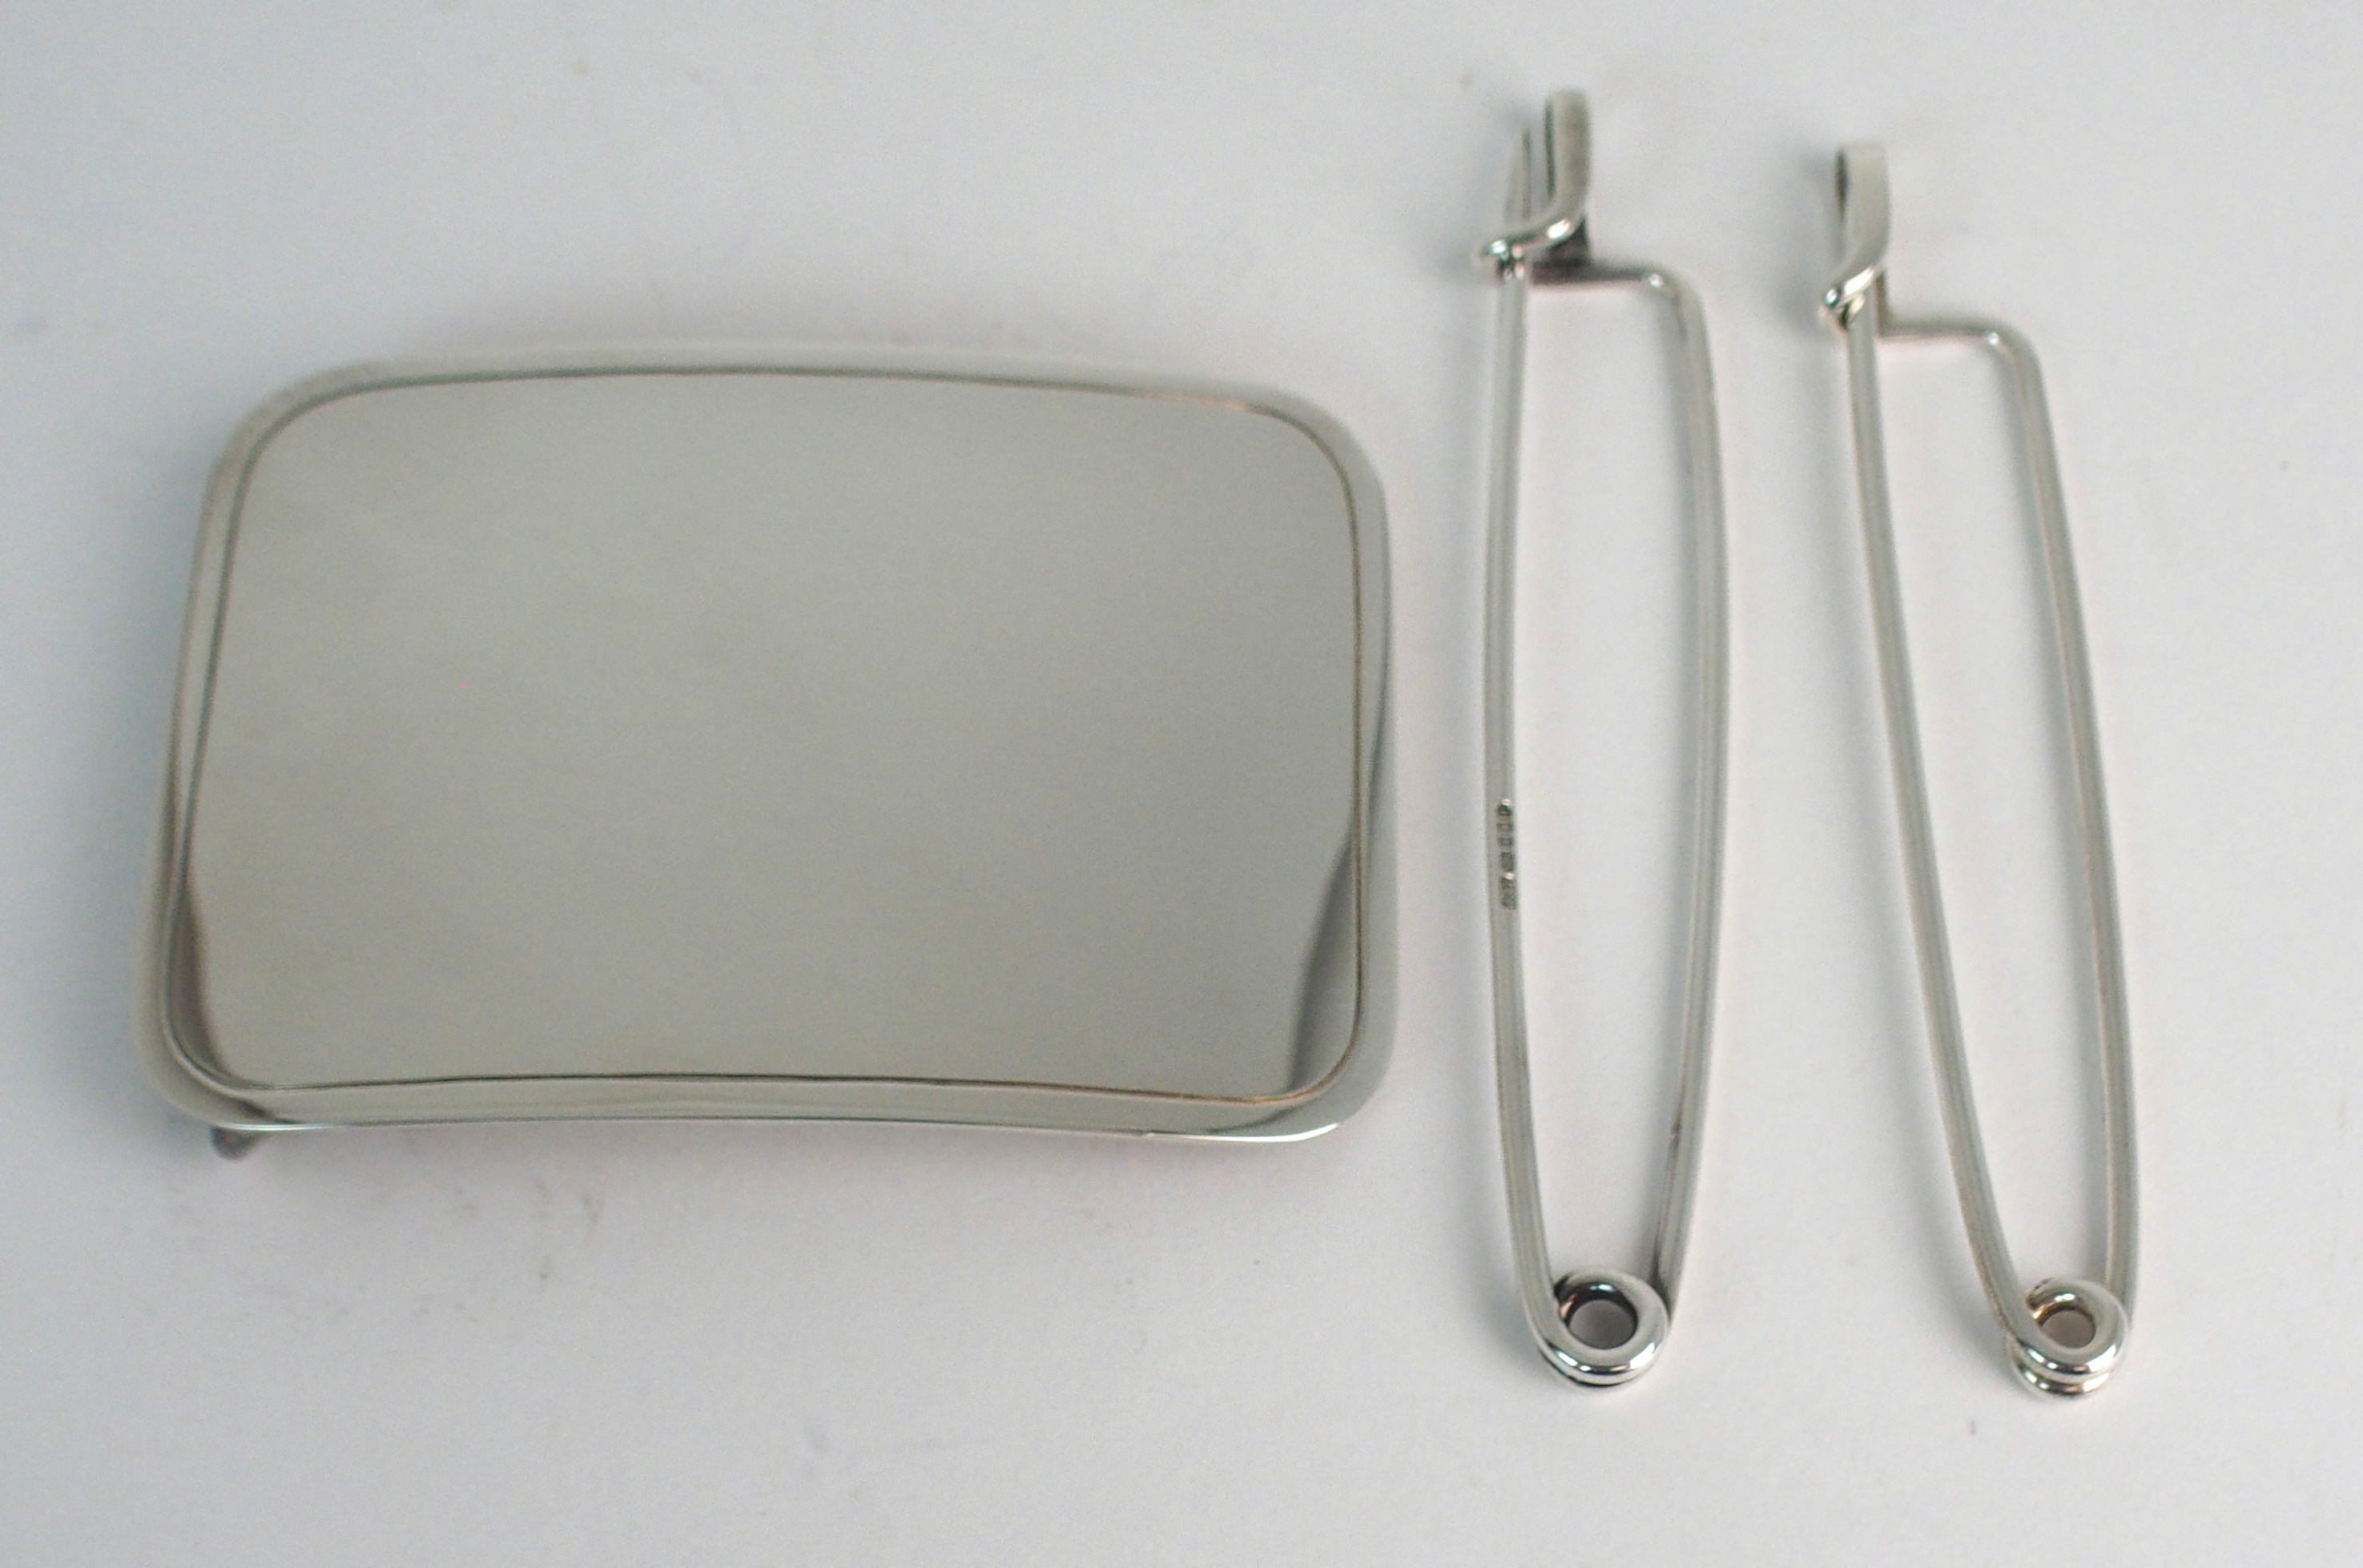 A HAMILTON & INCHES SILVER BELT BUCKLE and two Hamilton & Inches silver kilt pins (3) Condition